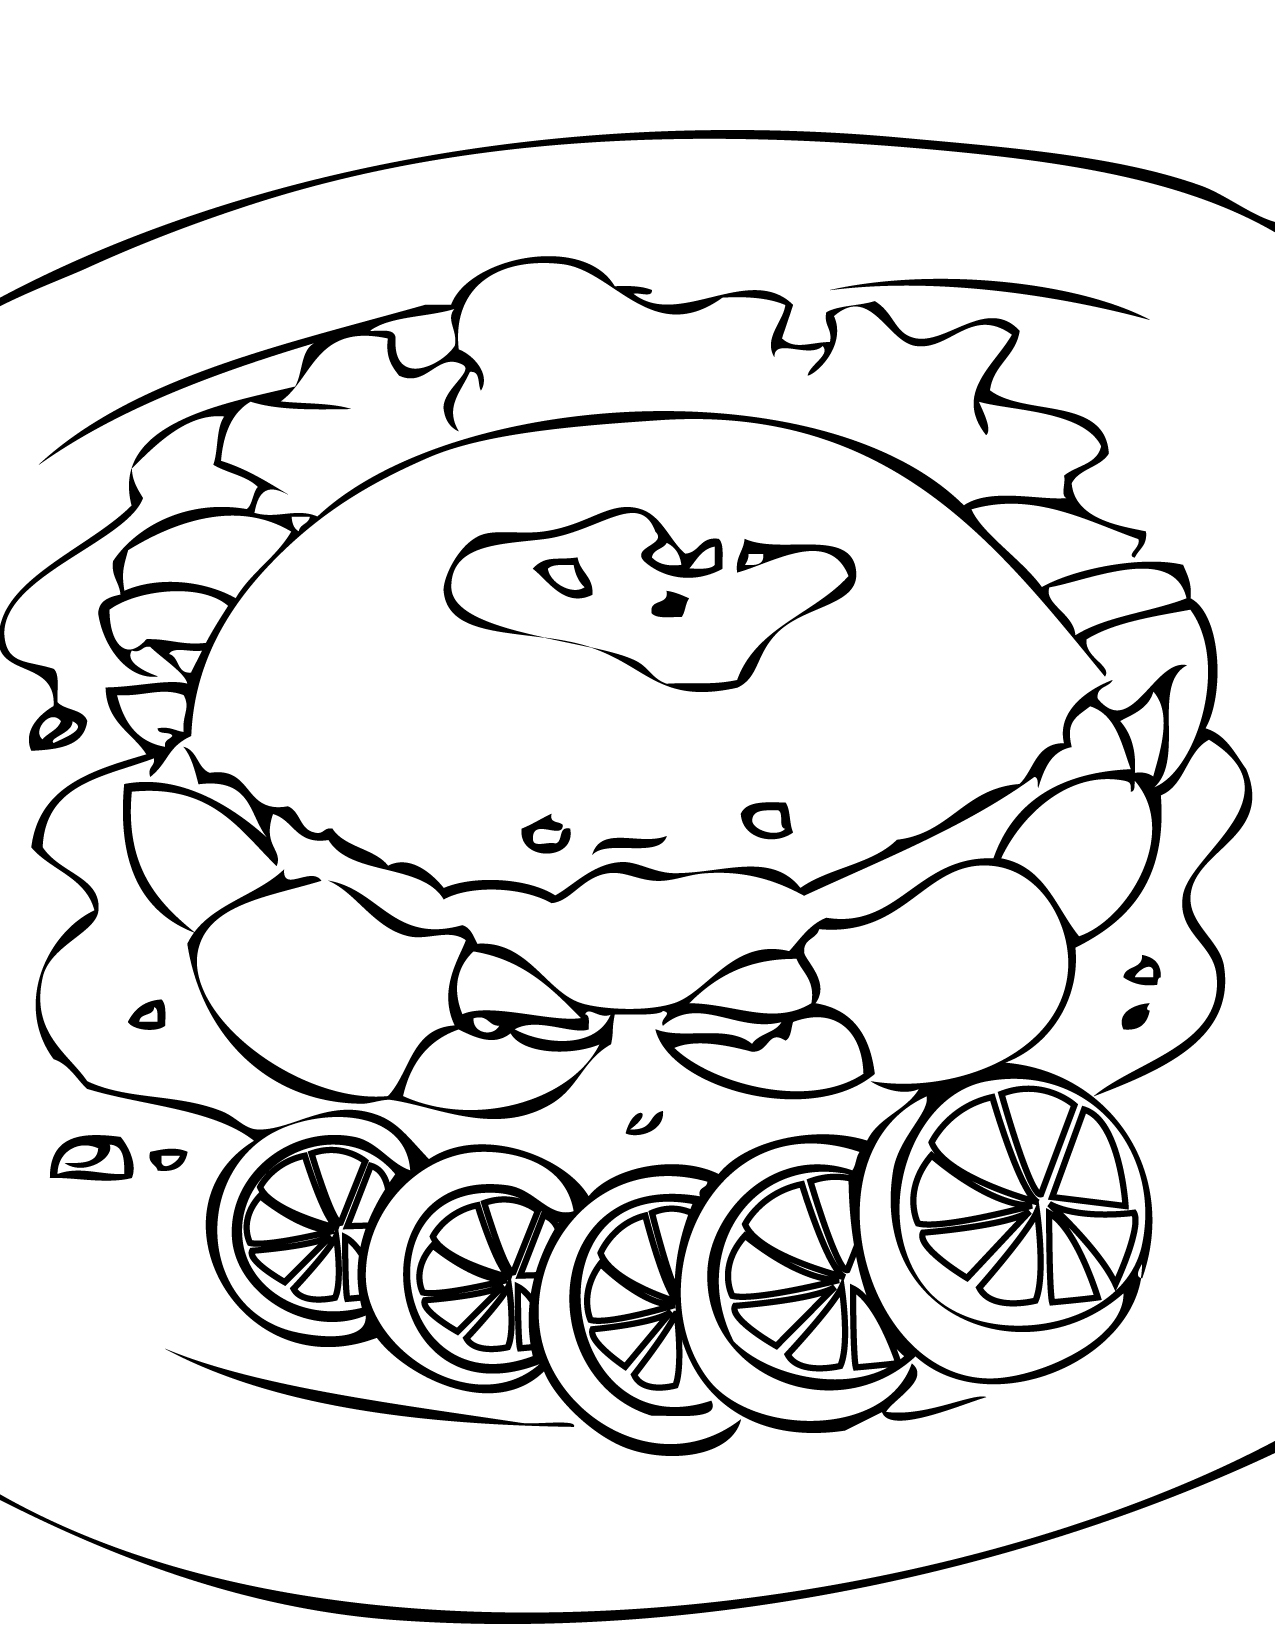 crab coloring page handipoints